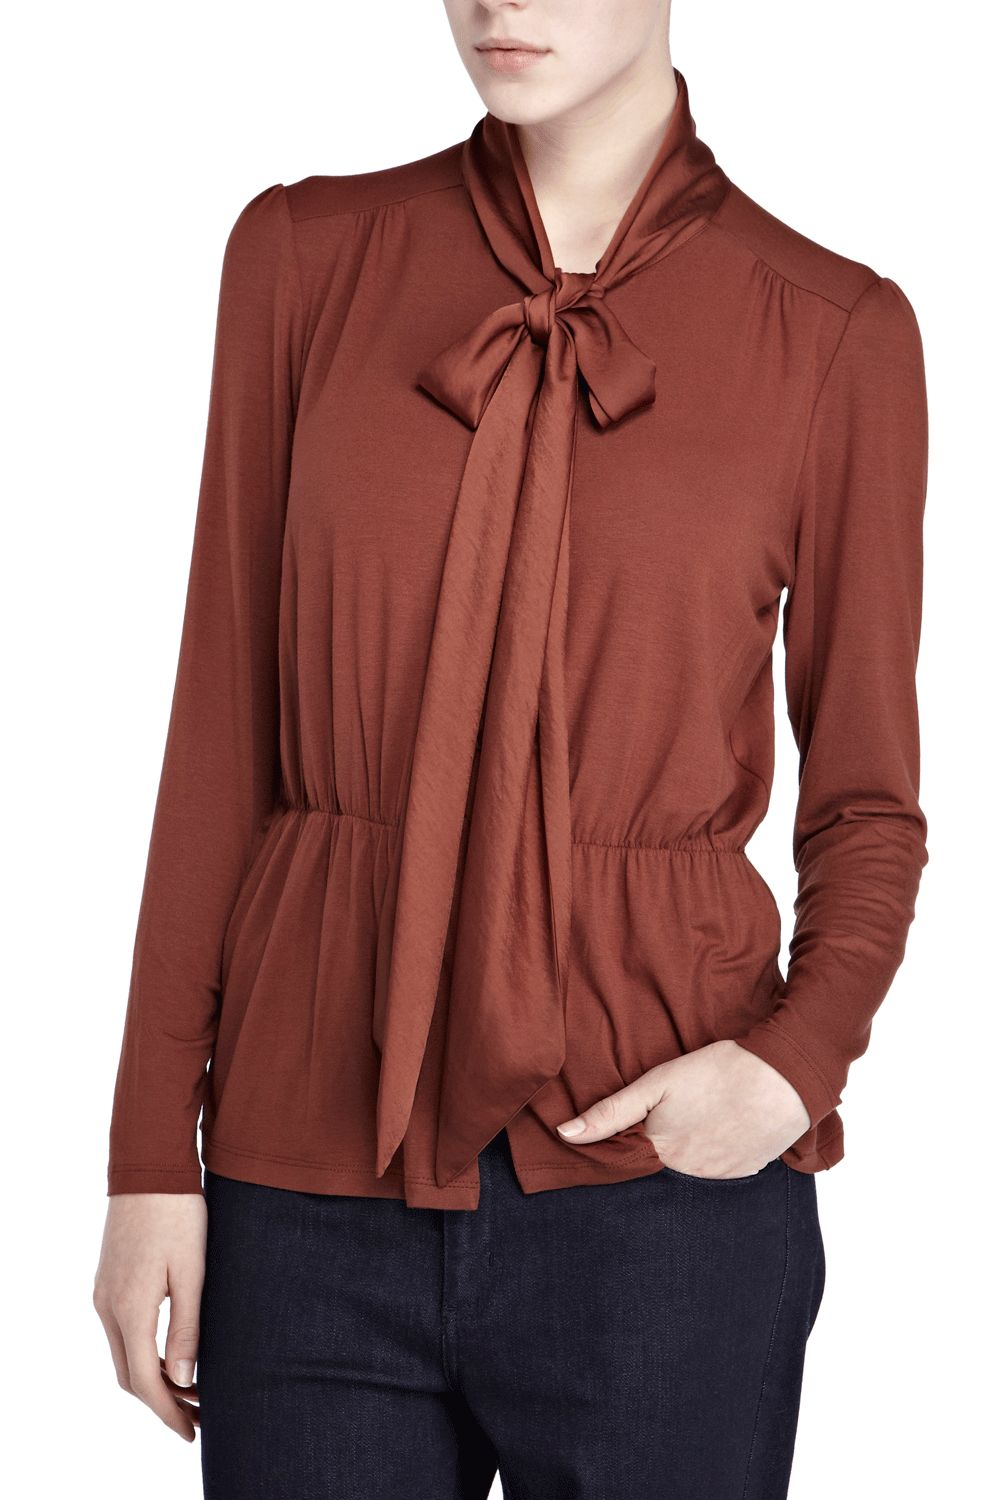 Oasis Pussybow blouse Brown product image